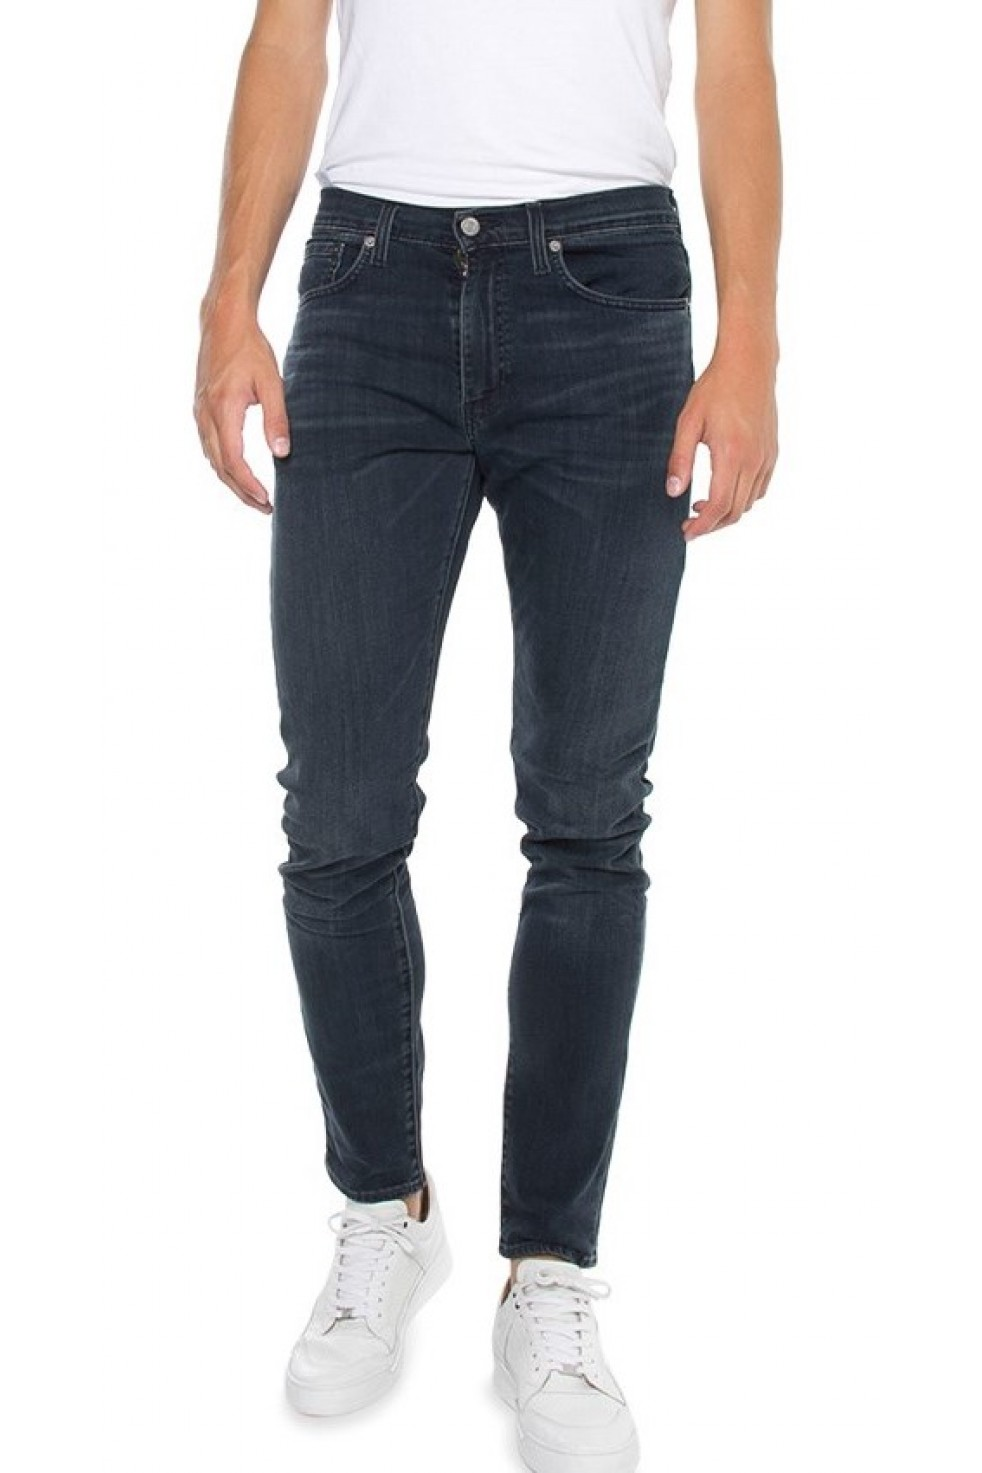 Levis Erkek Jean Pantolon 512 Slim Taper Fit  28833-0279